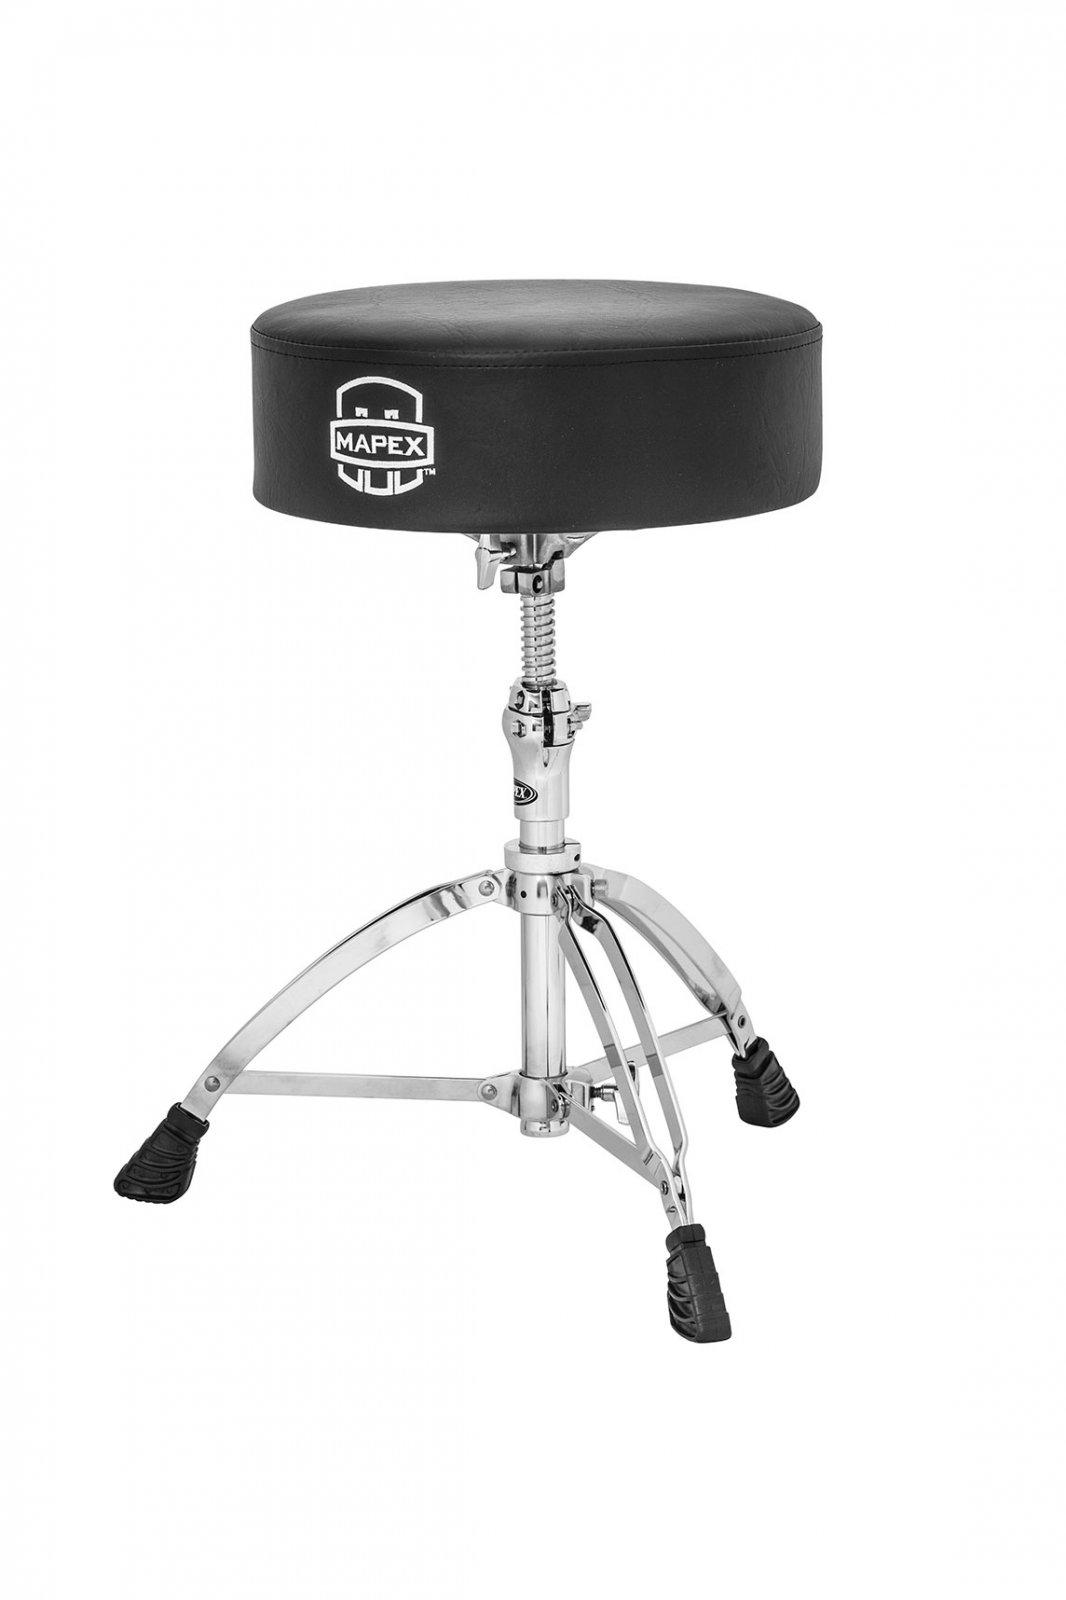 Mapex T750A Drum Throne Round Top Double Braced